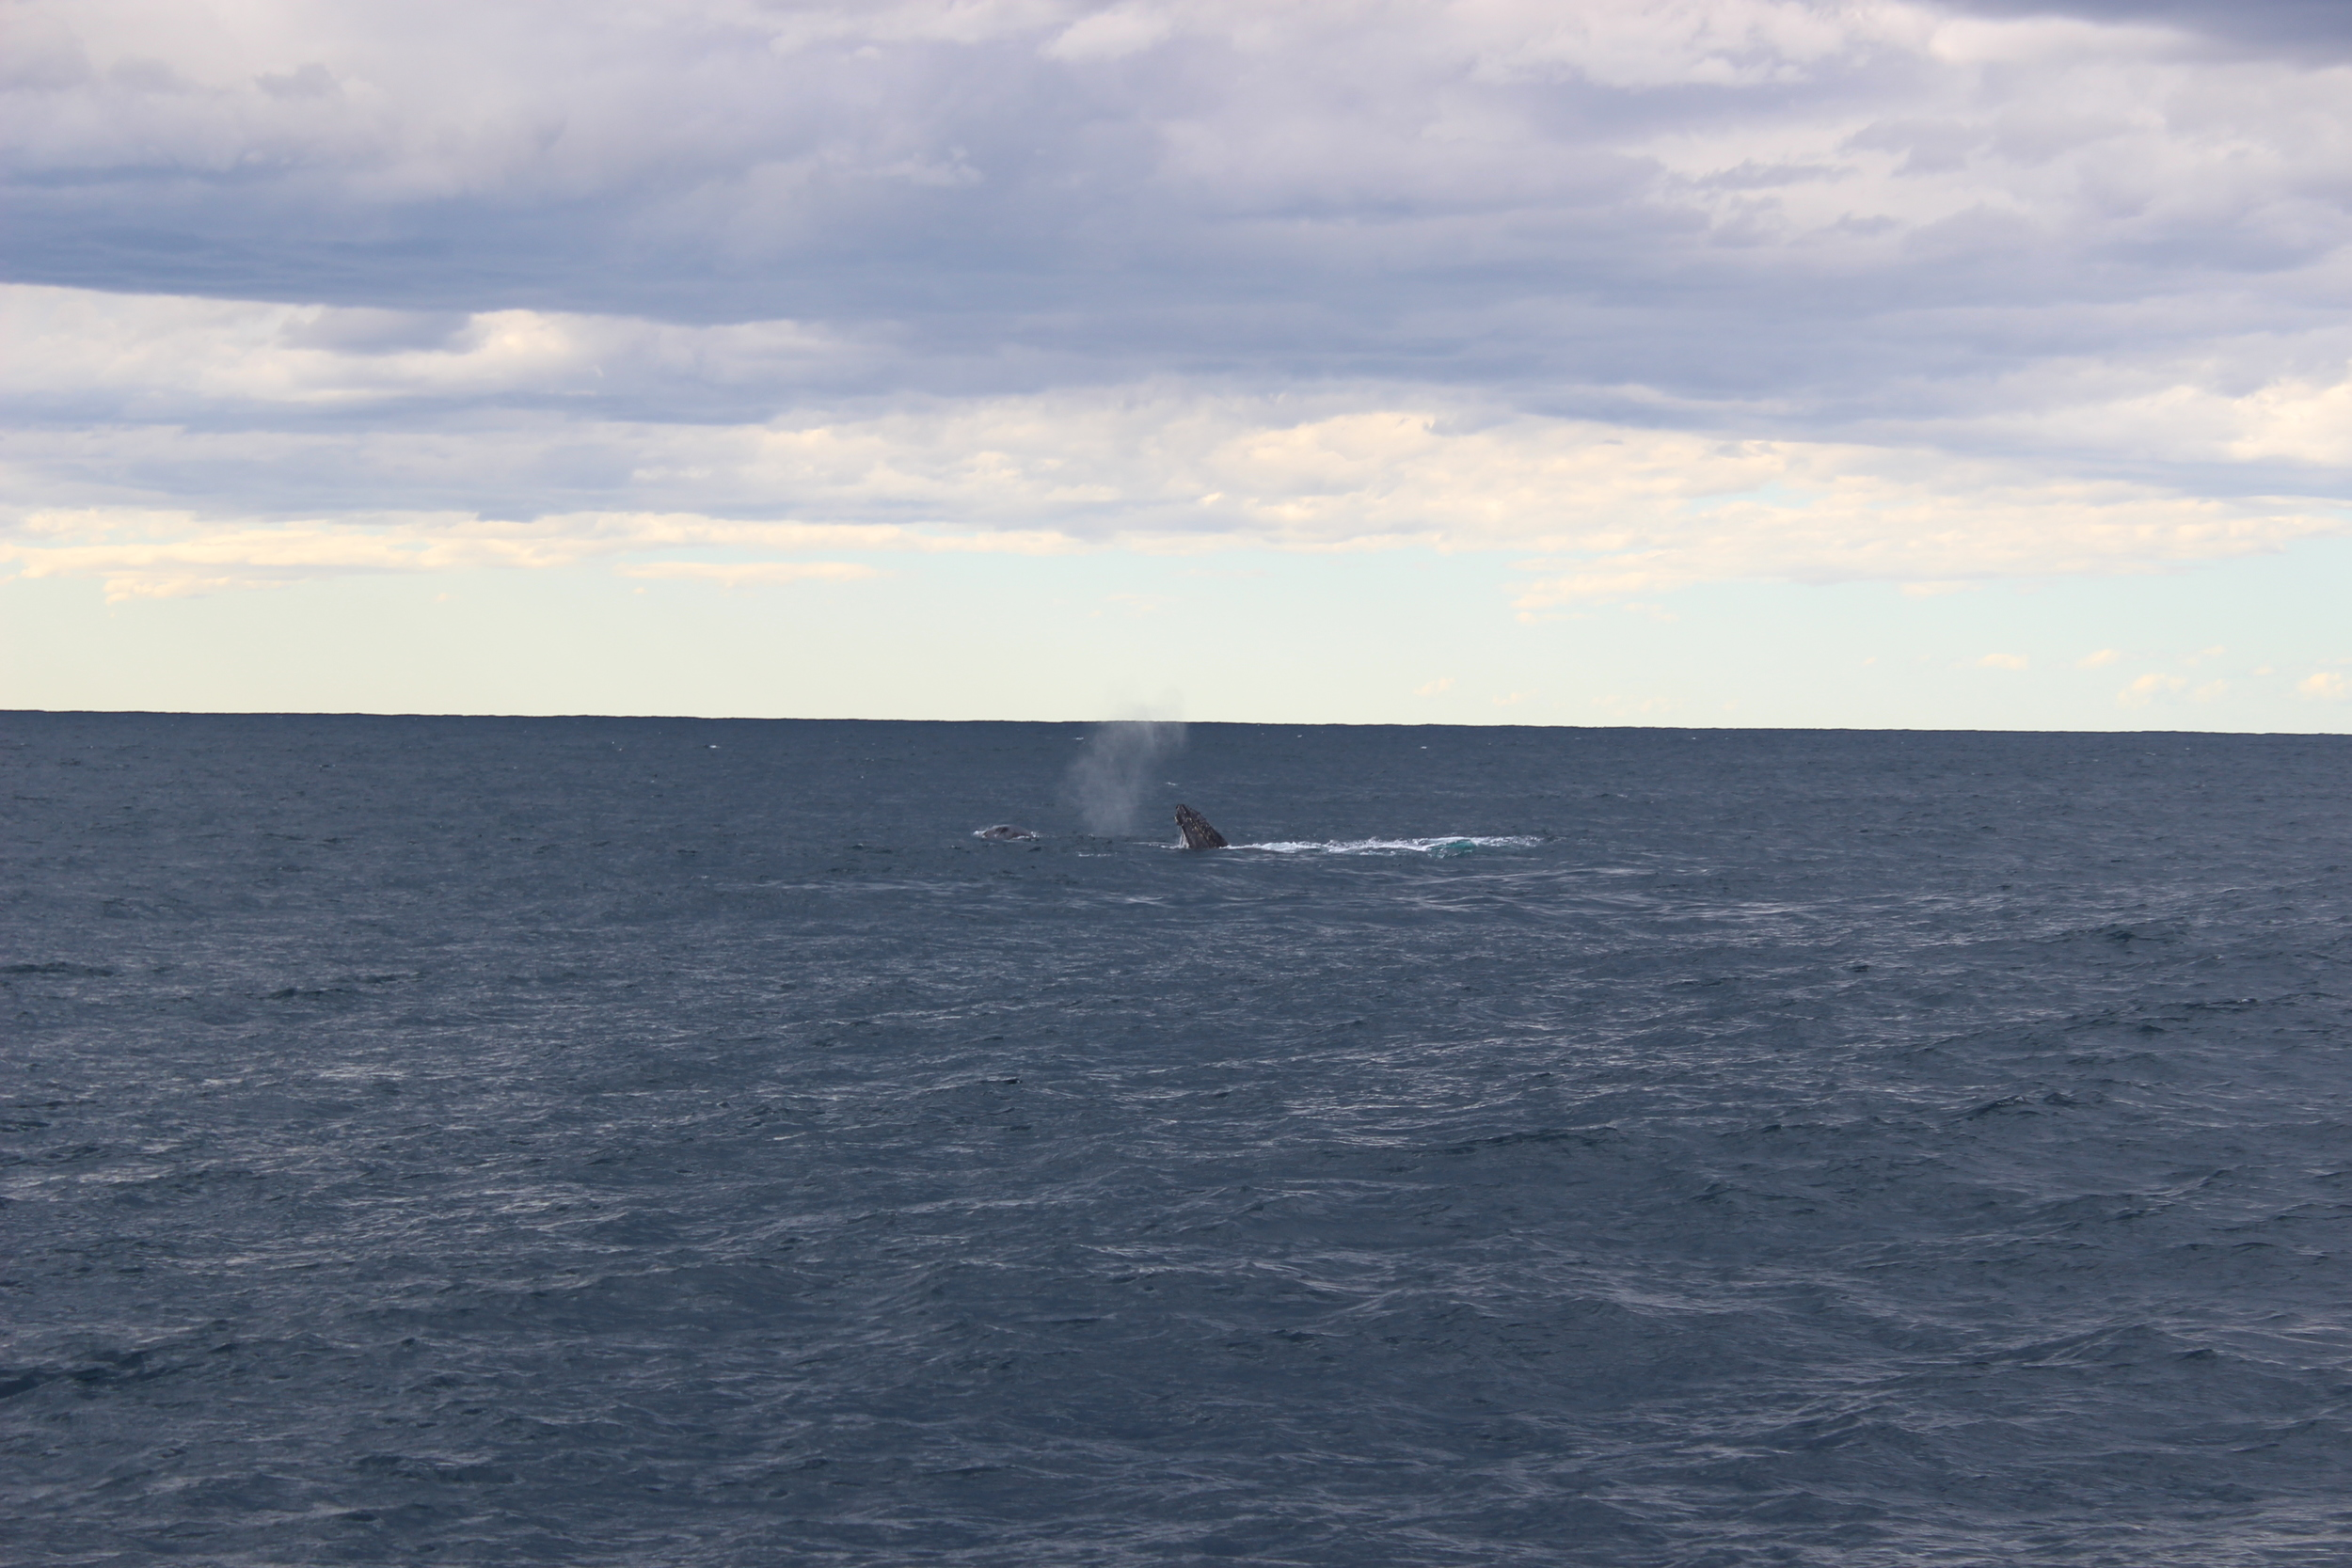 We were lucky enough to spot some Humpback whales quite close to Roam, about 300 meters off our starboard bow.